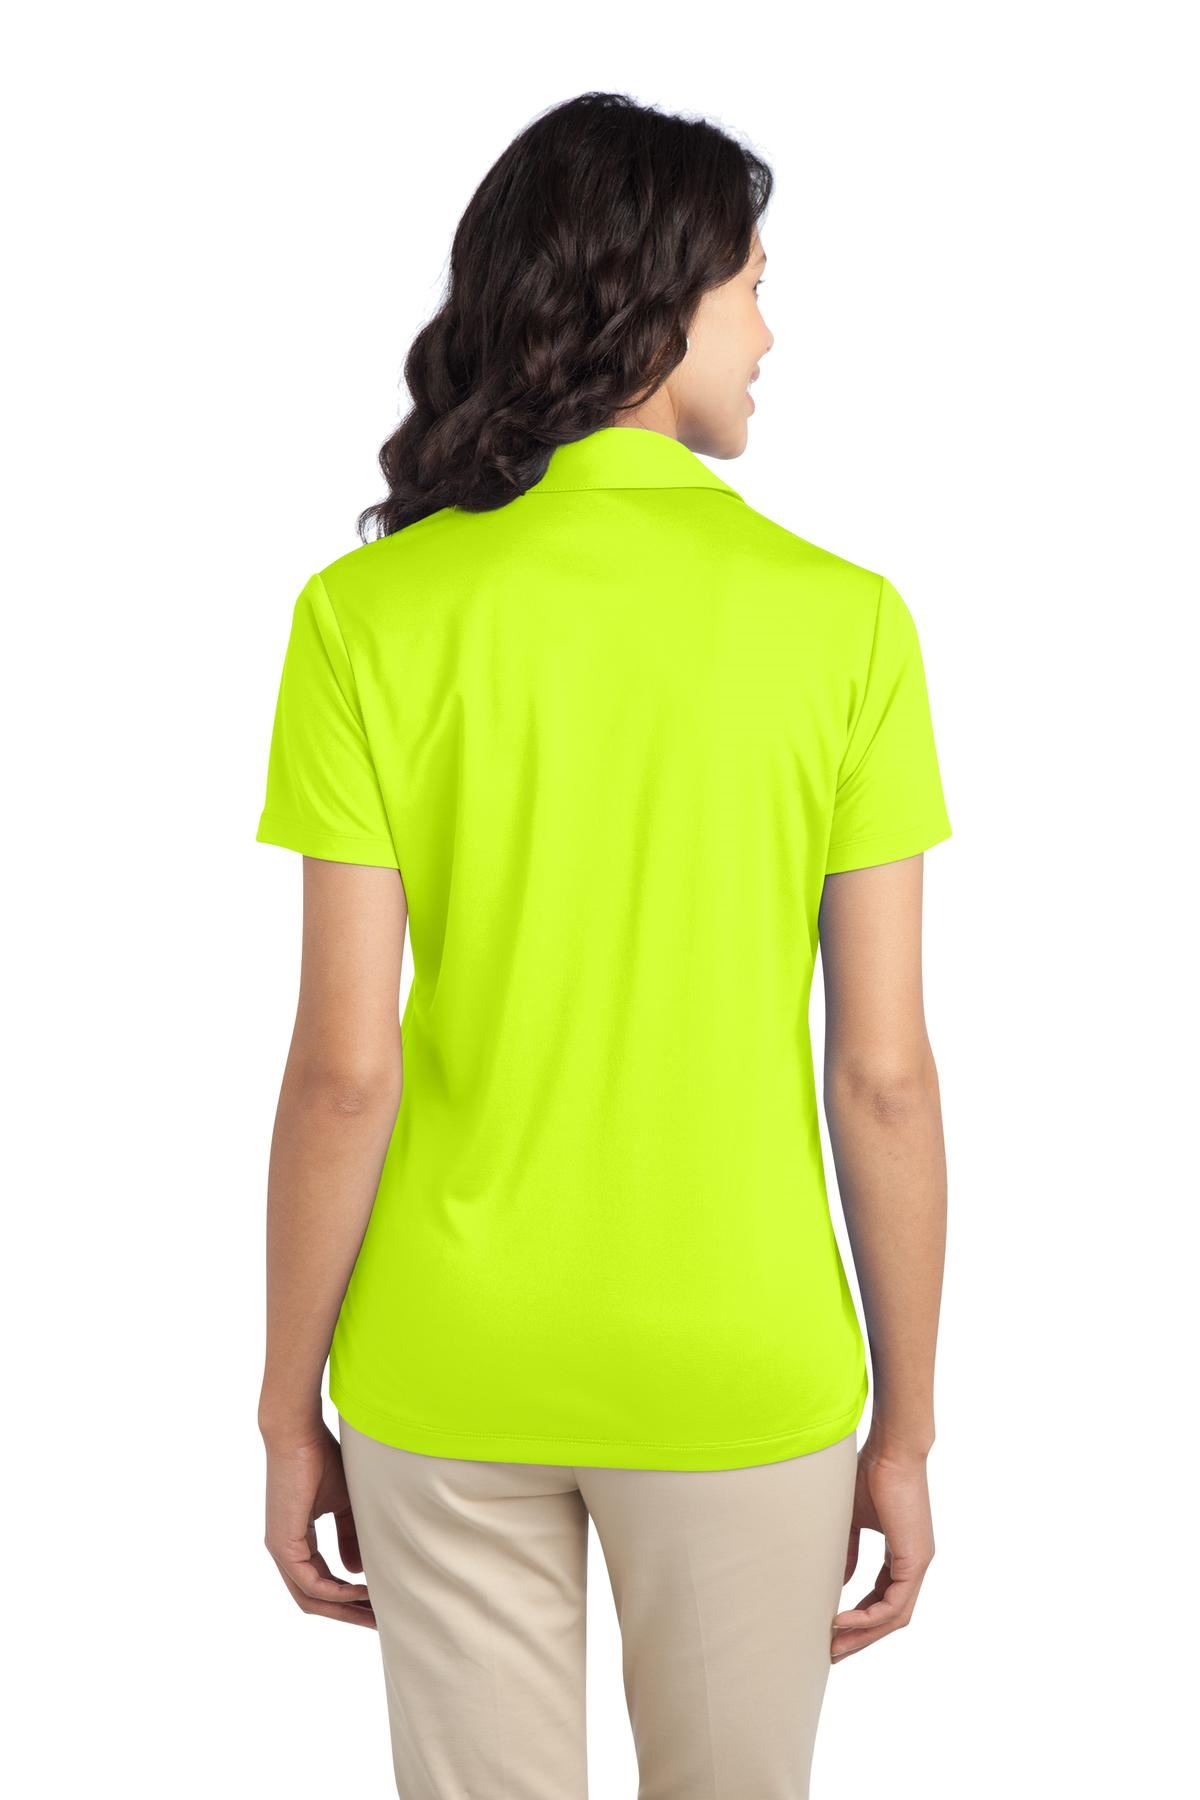 Port-Authority-Womens-Dri-Fit-SIlk-Touch-Performance-Polo-Golf-Shirt-M-L540 thumbnail 23